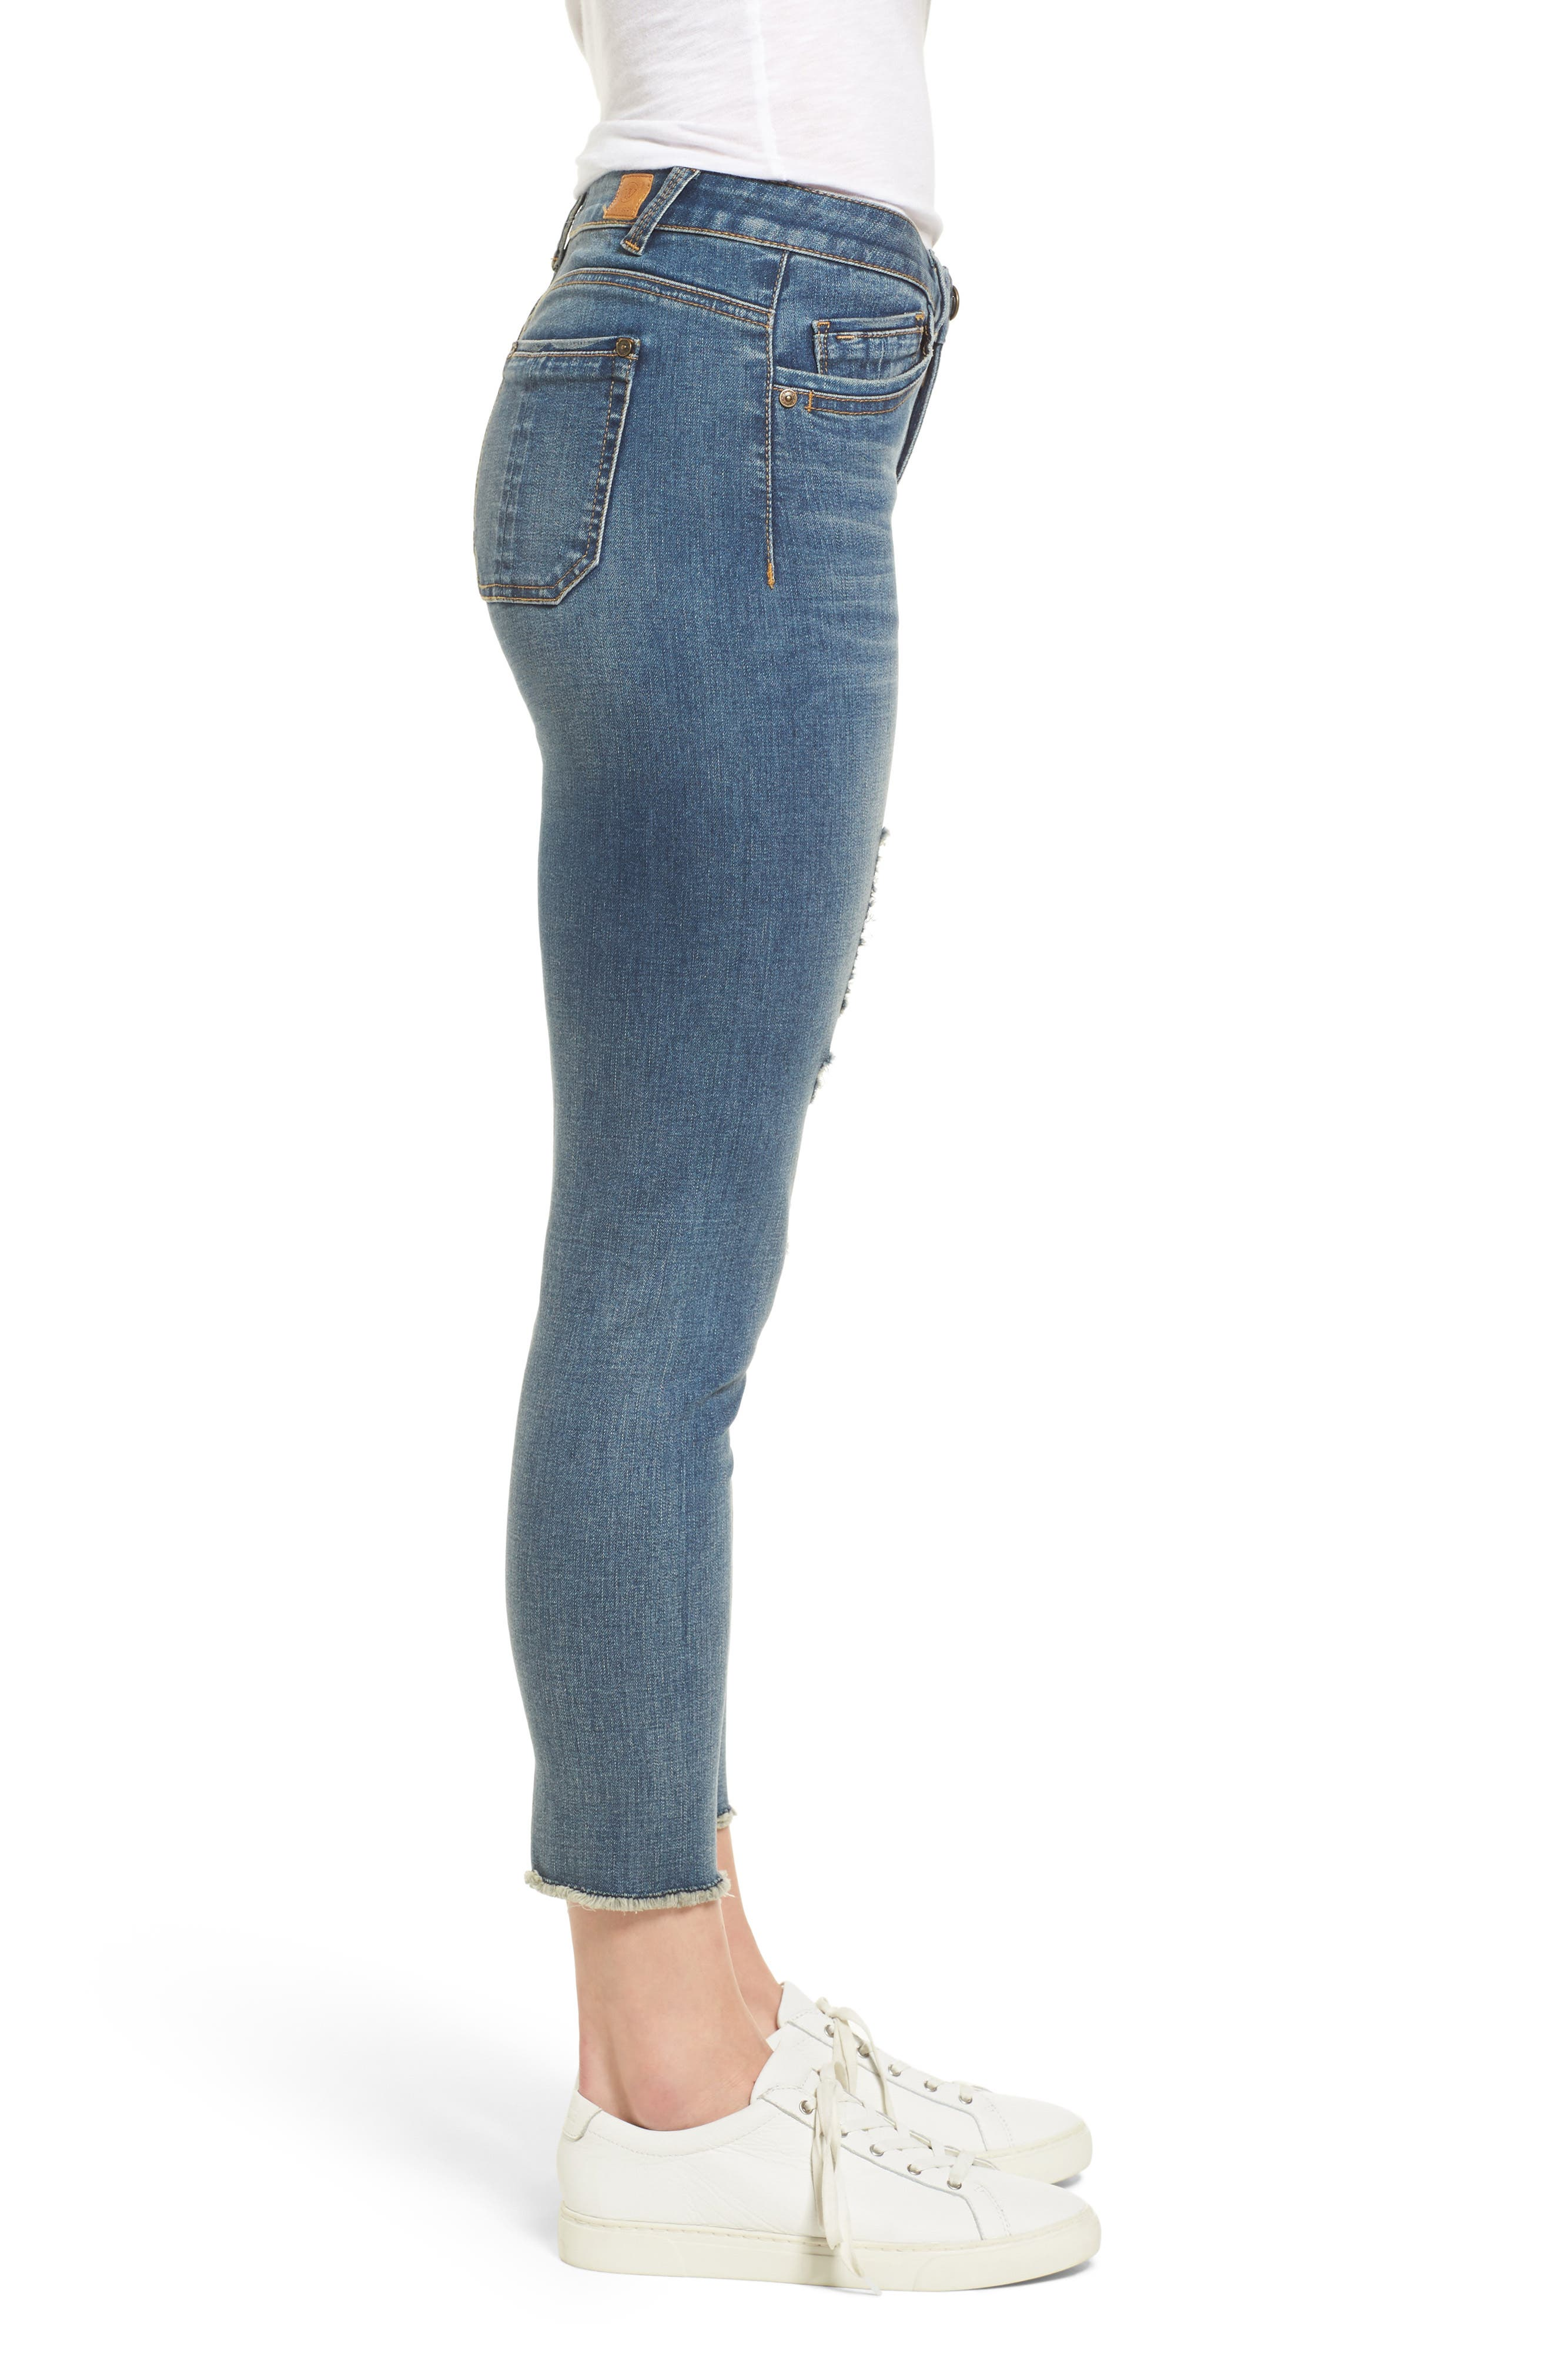 Alternate Image 3  - Wit & Wisdom Ripped Seamless Ankle Jeans (Nordstrom Exclusive) (Regular & Petite)